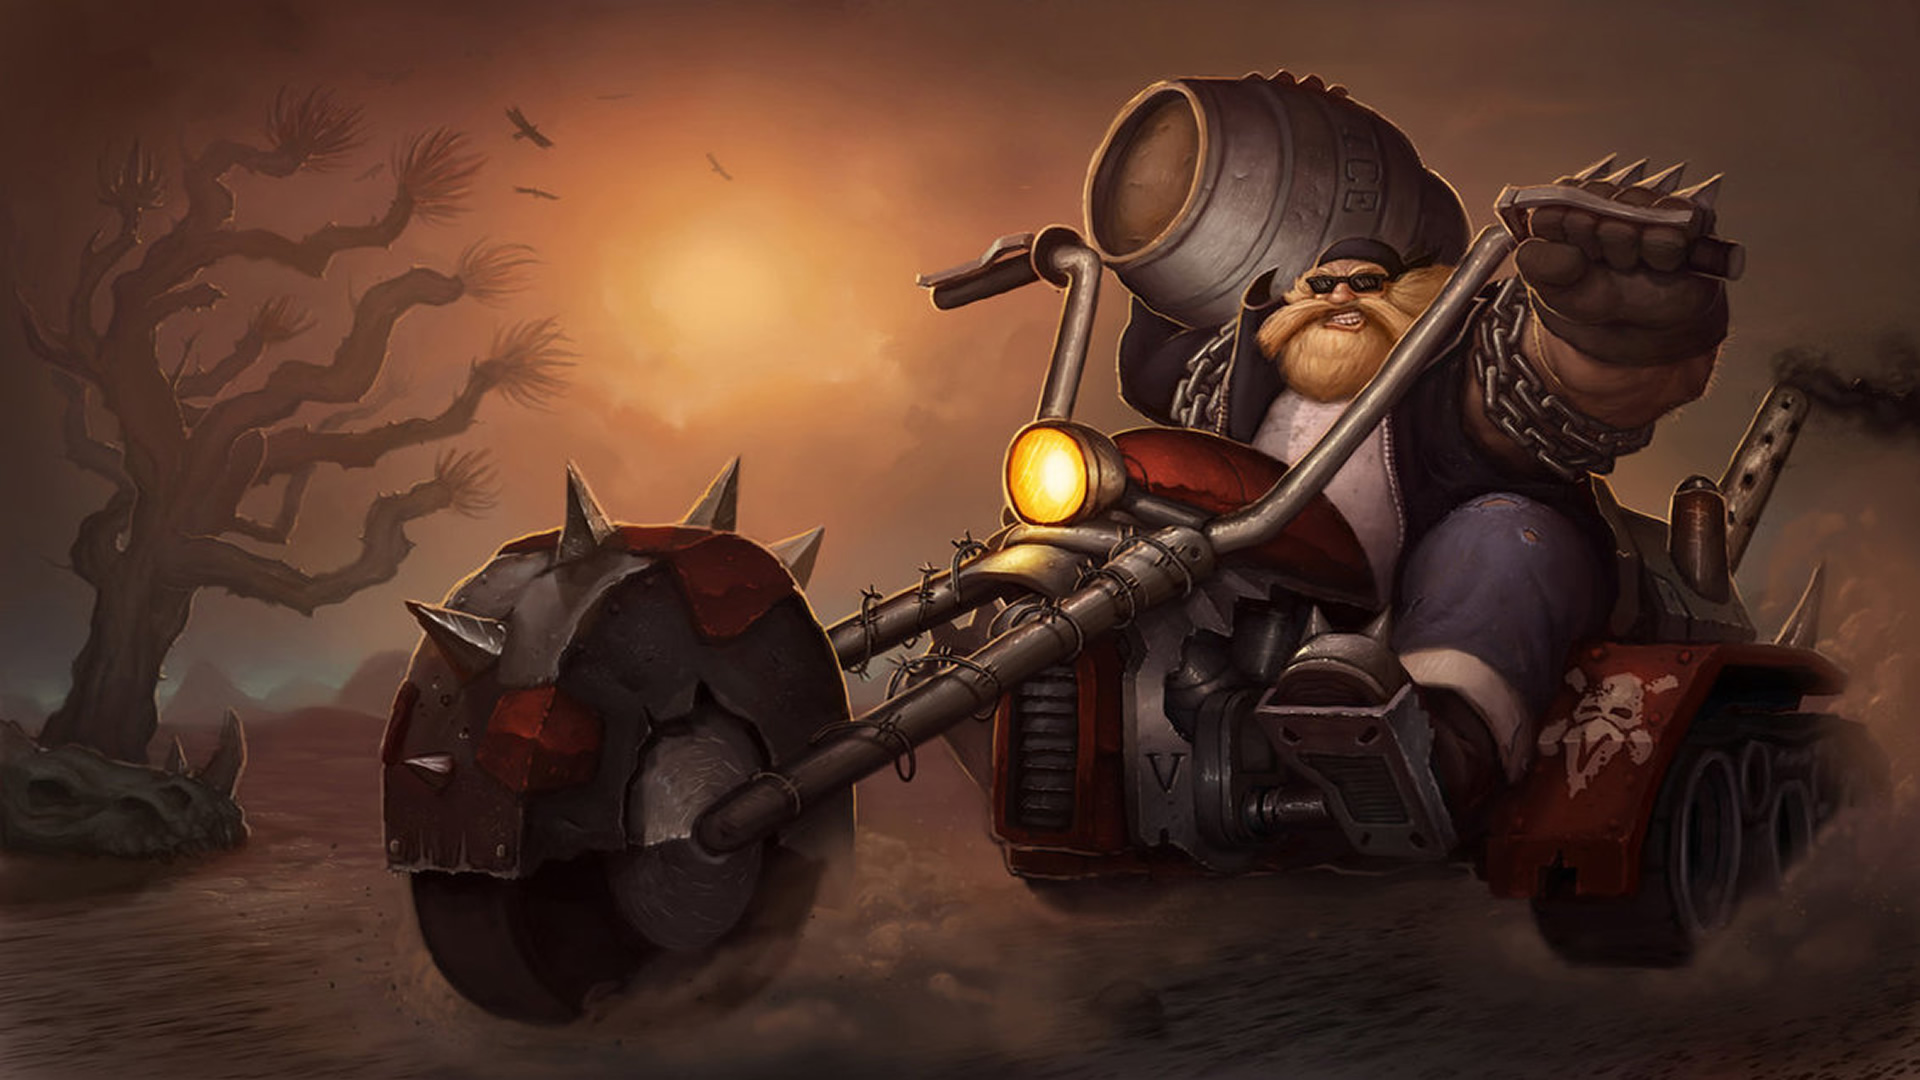 Biker Gragas Fanart Wallpaper   LeagueSplash 1920x1080